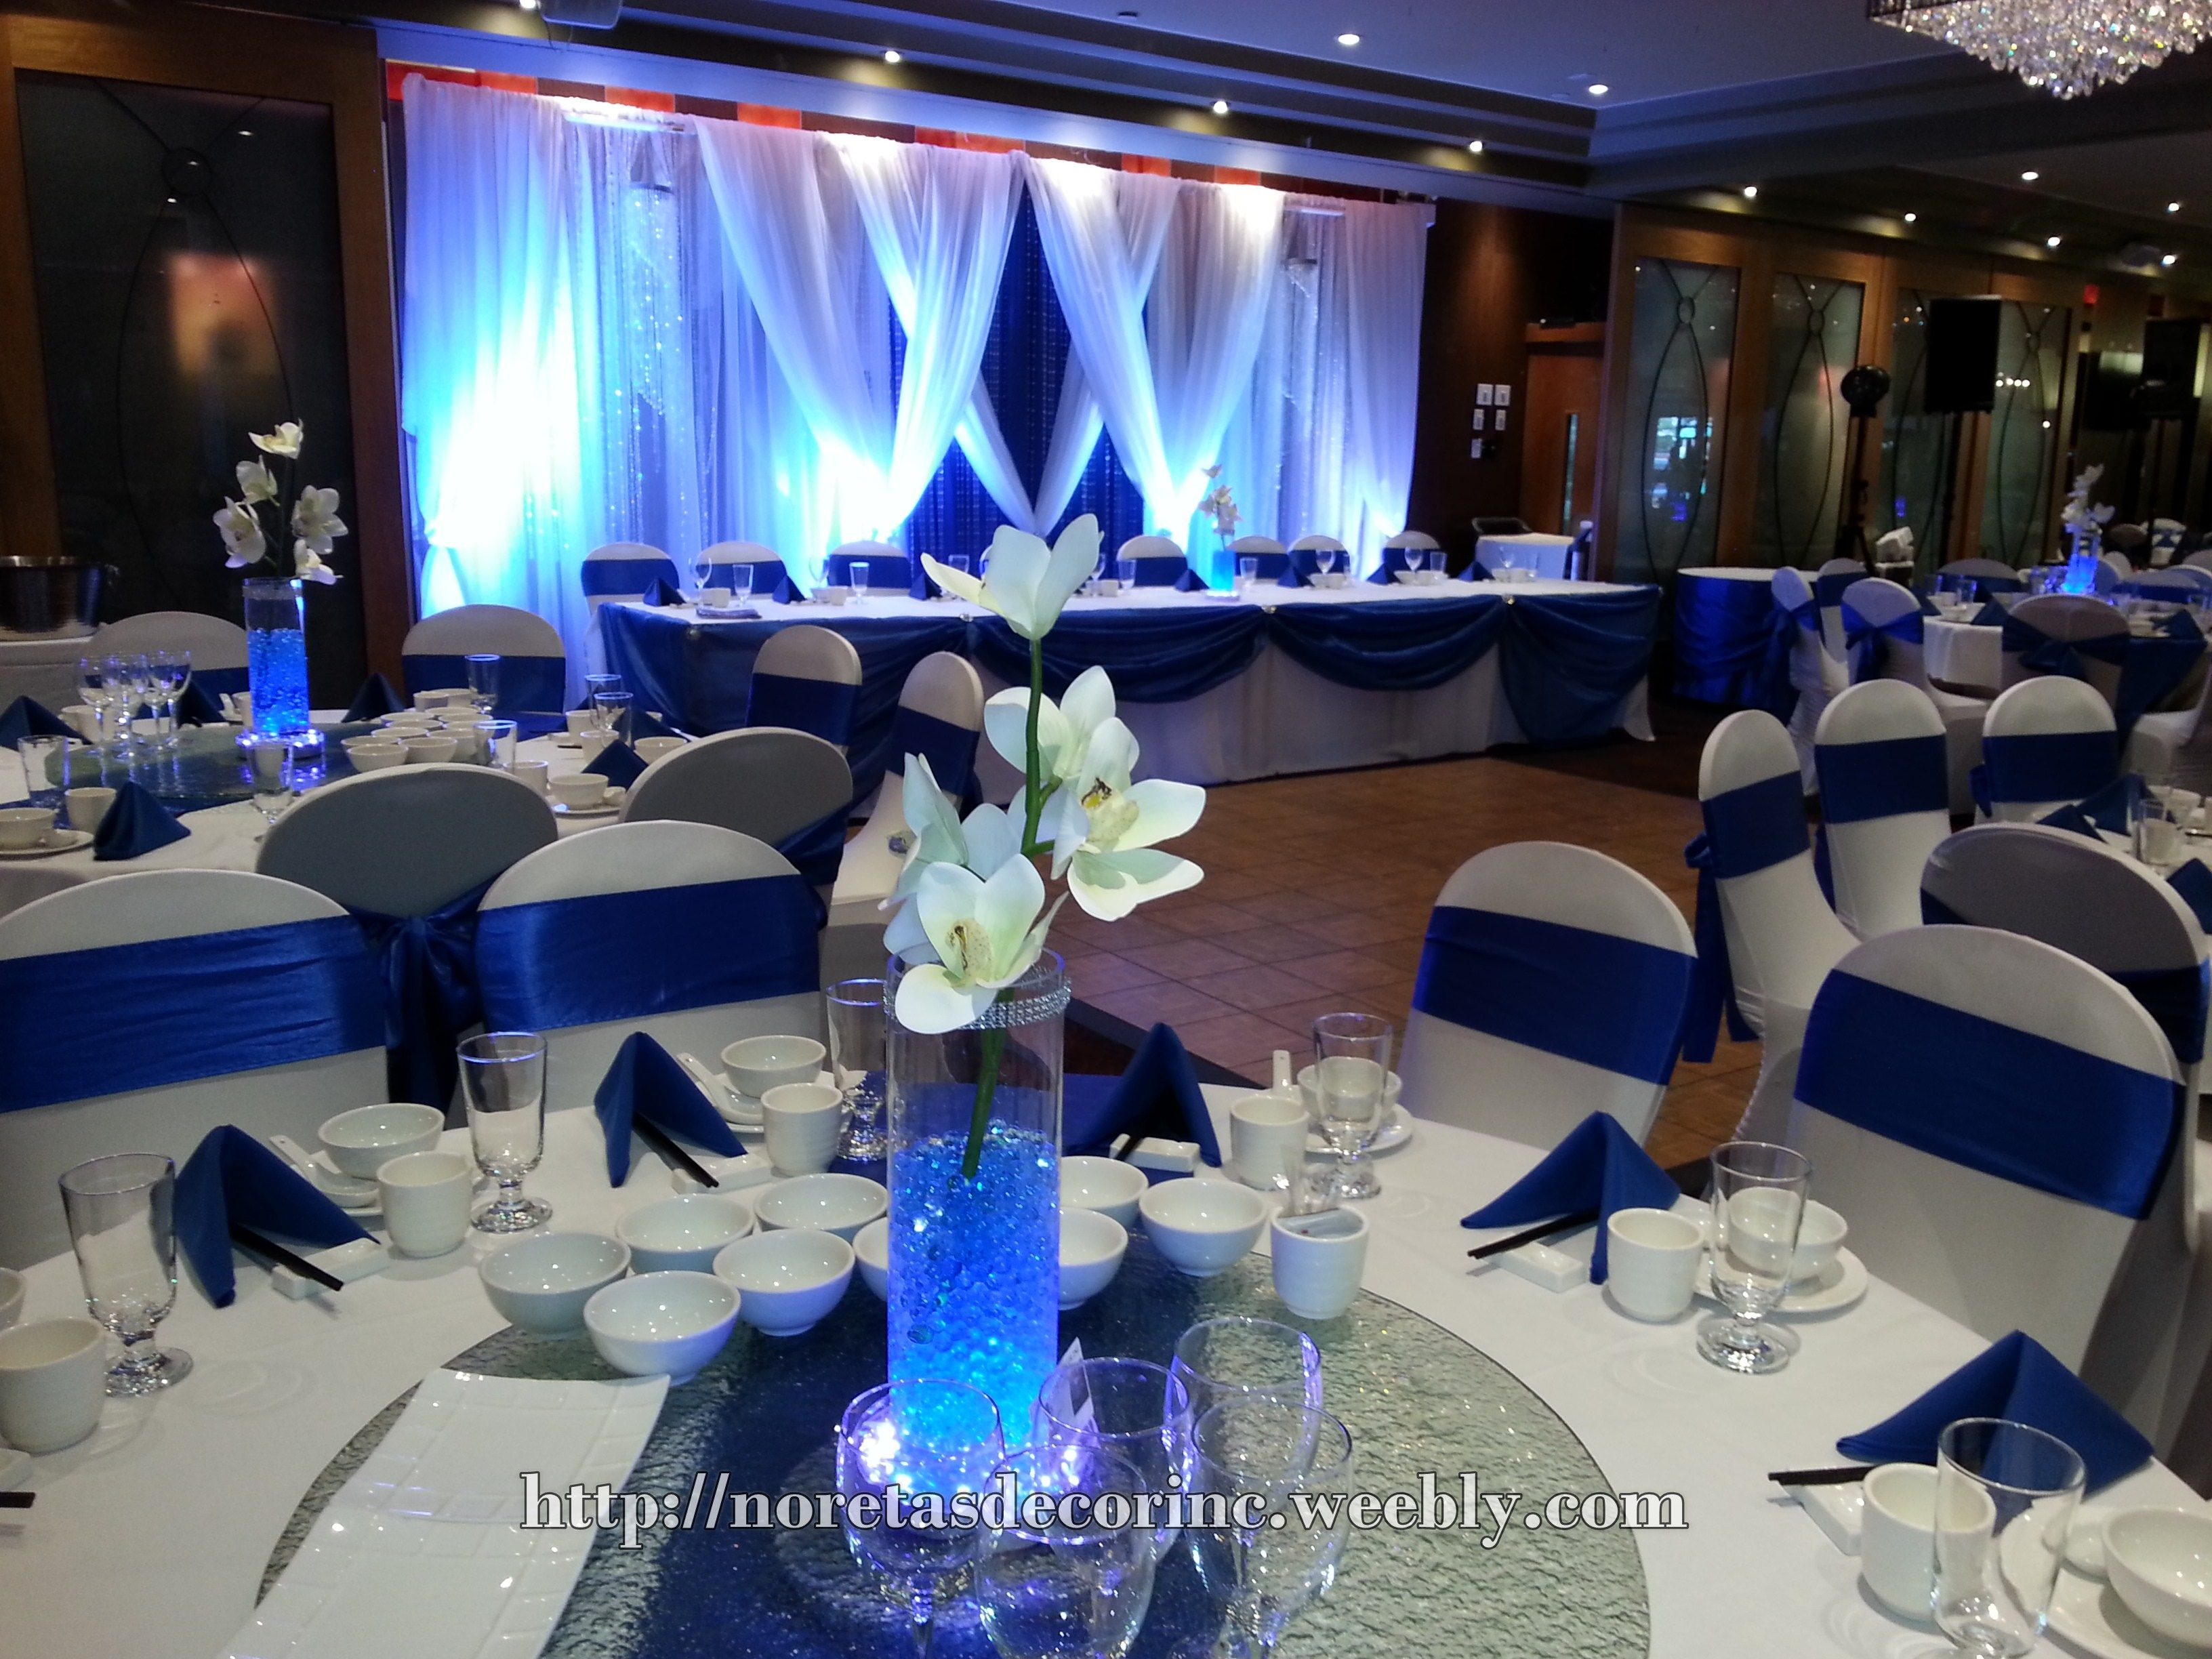 Wedding decor blue and white  Royal blue decoration blue and white backdrop  th and Fabulous